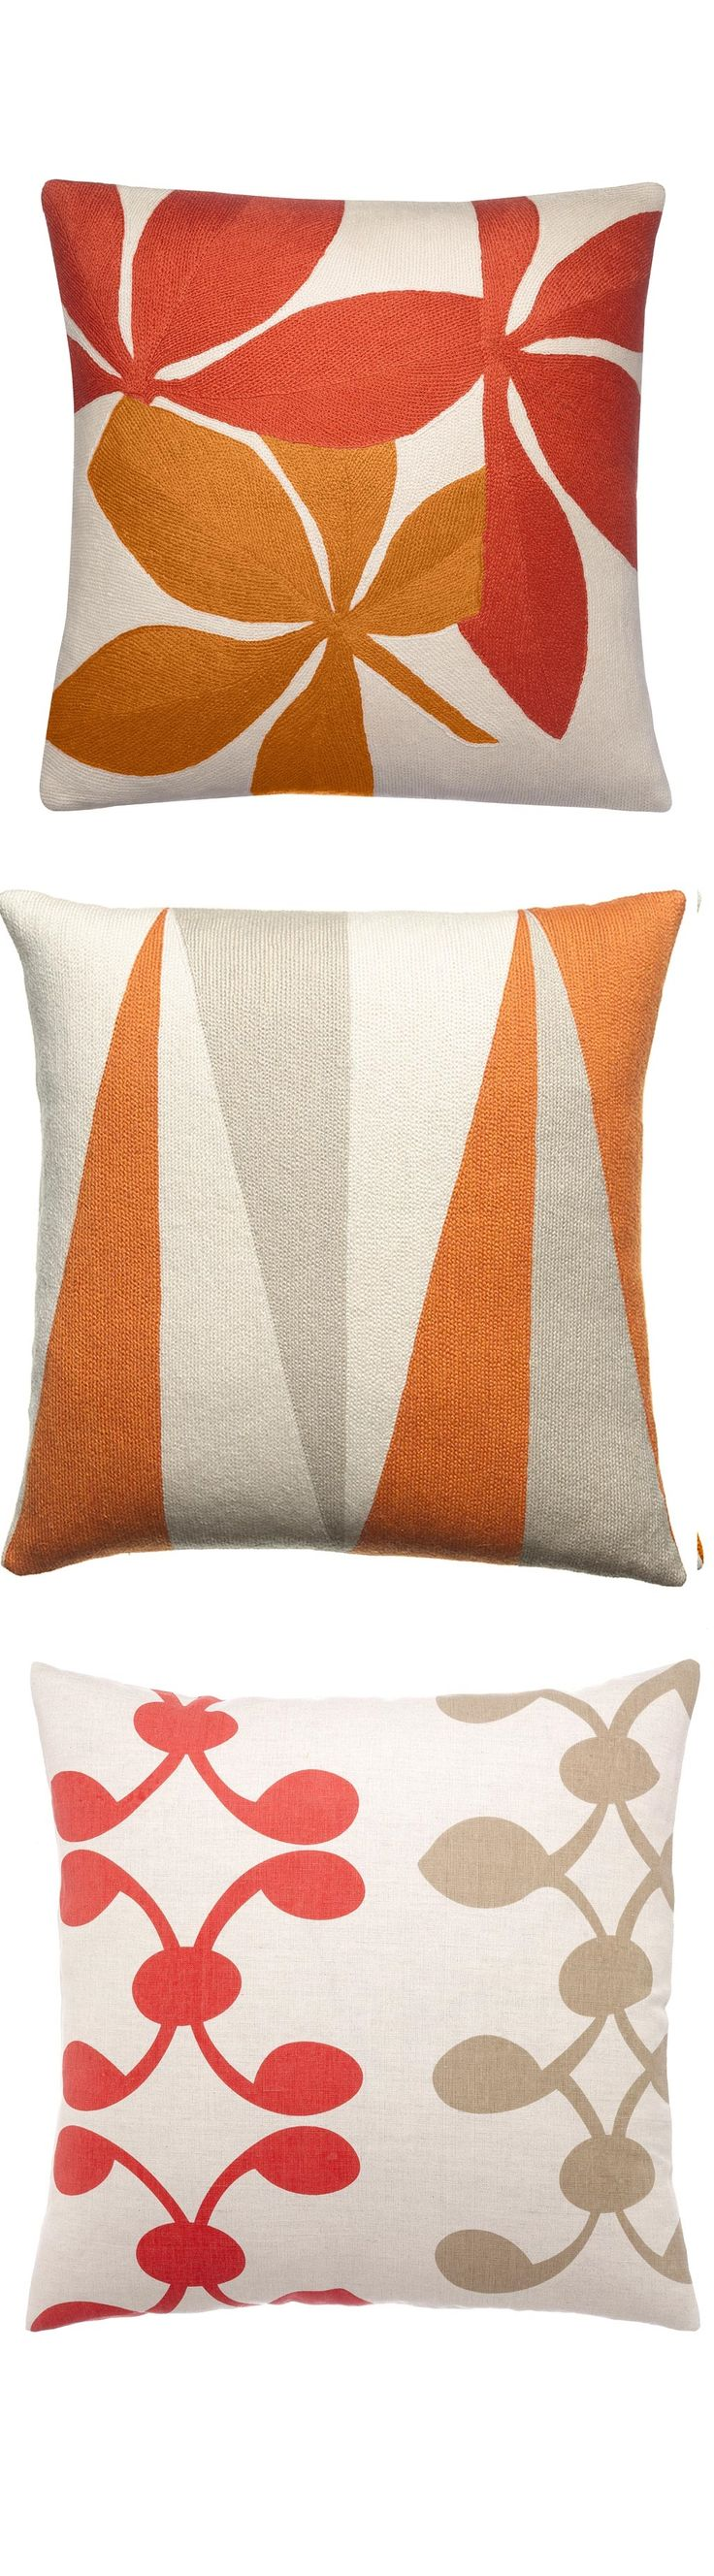 Orange Sofa Pillows Tangga Orange Throw Pillow 20x20